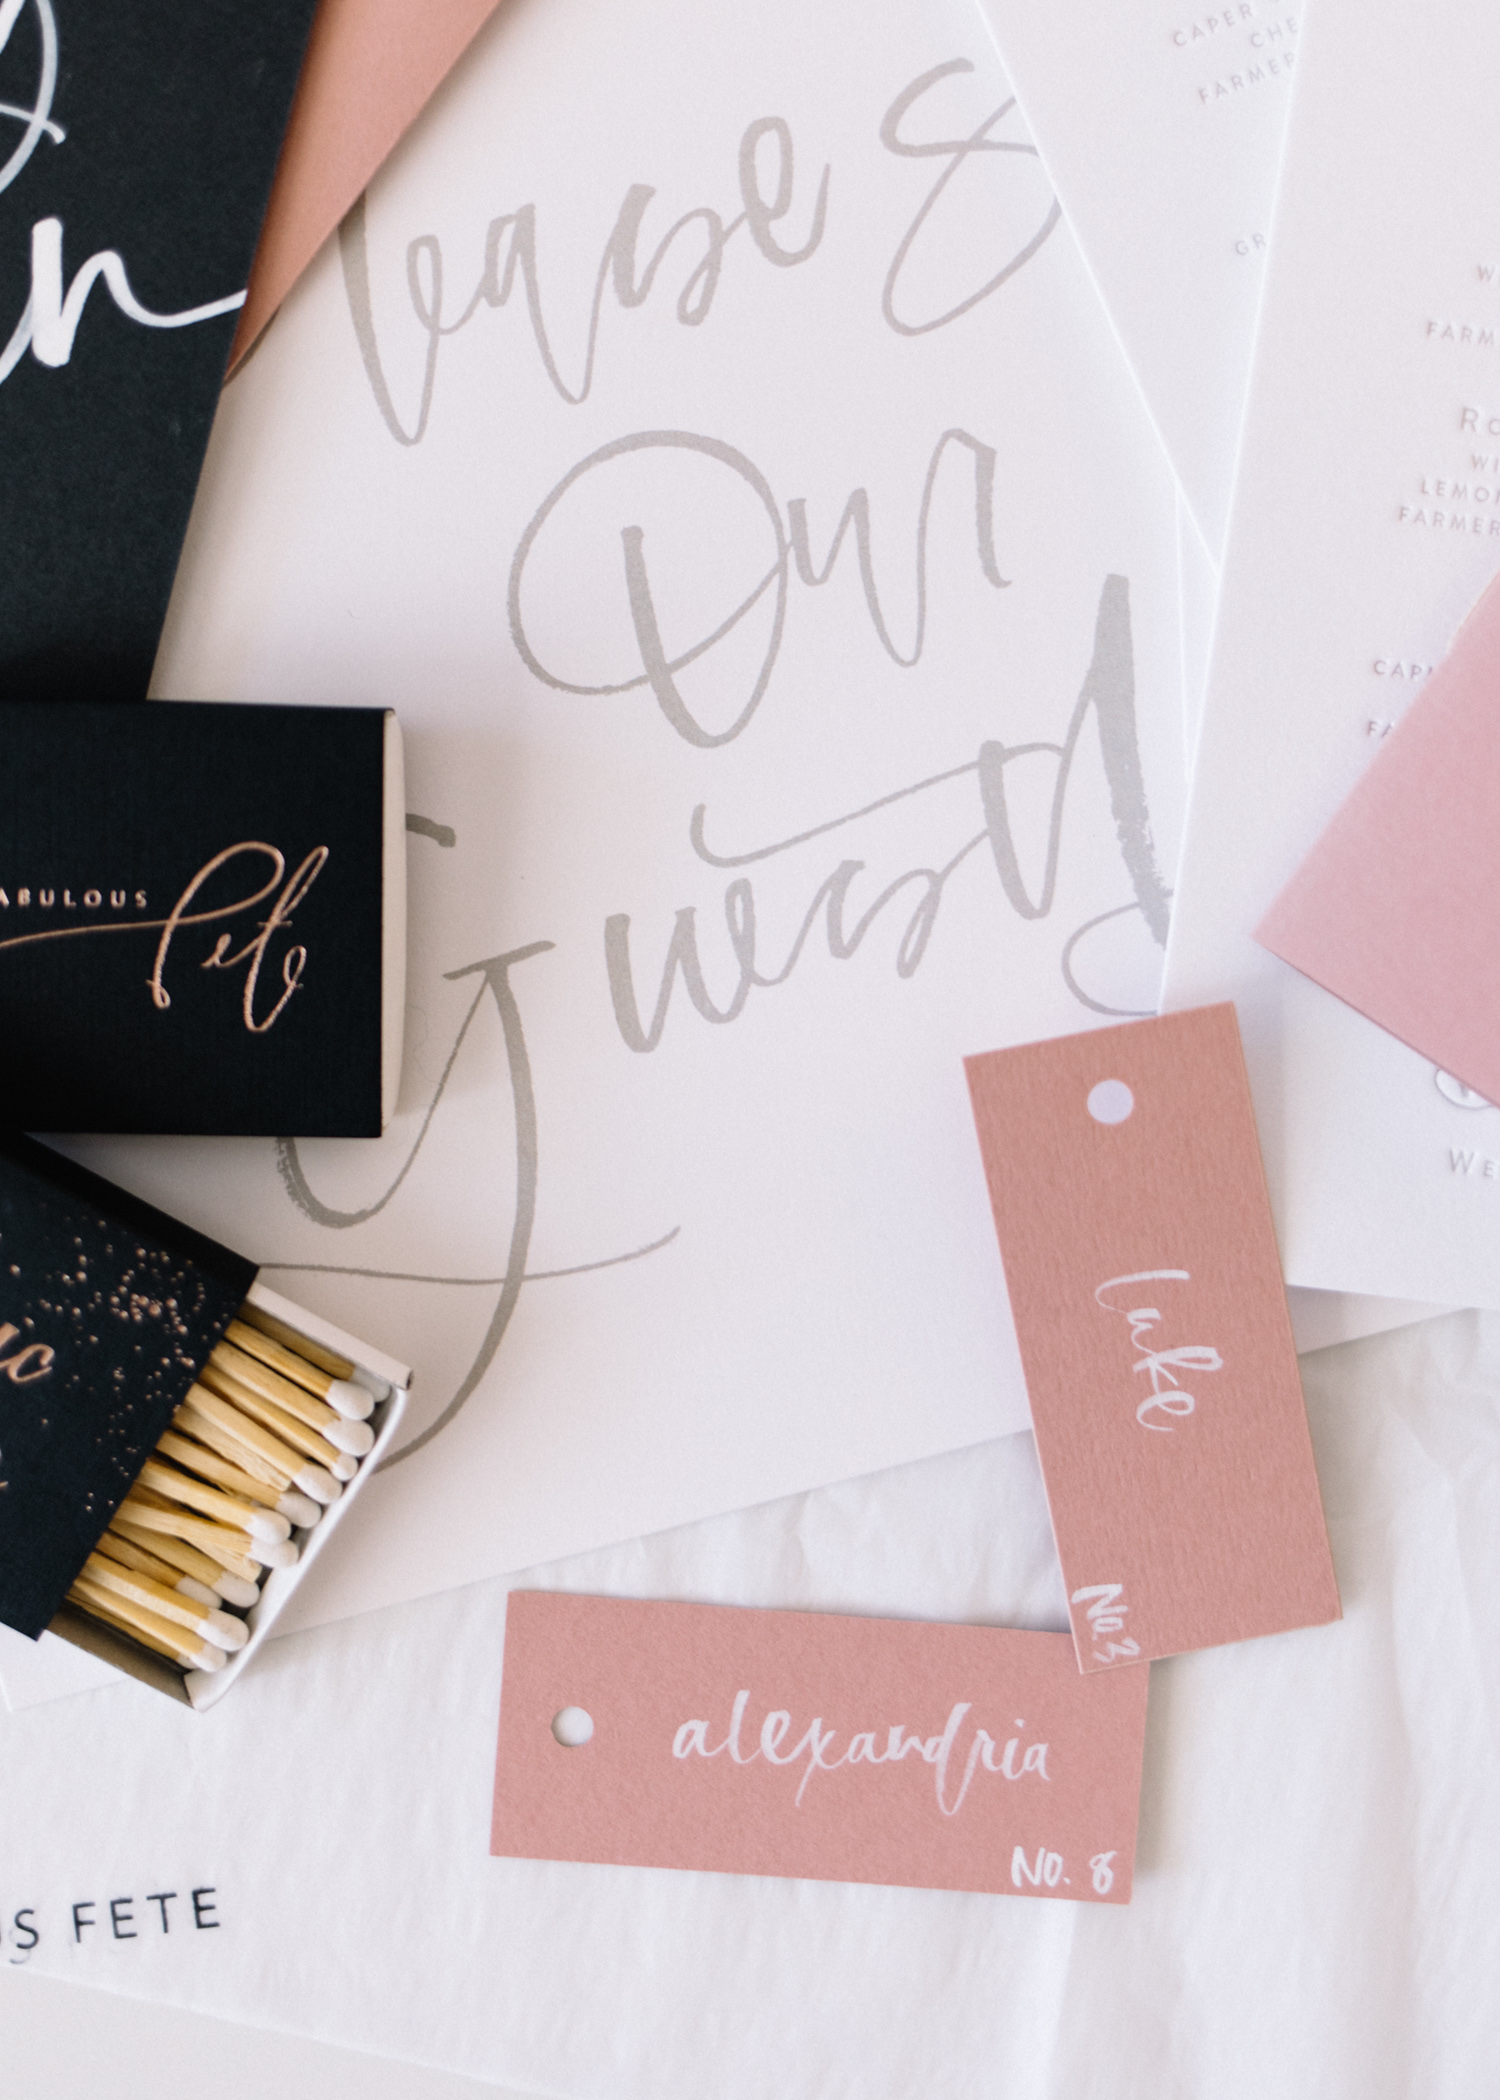 'Day Of Wedding Stationery': Why and What You May Need  || A Fabulous Fete